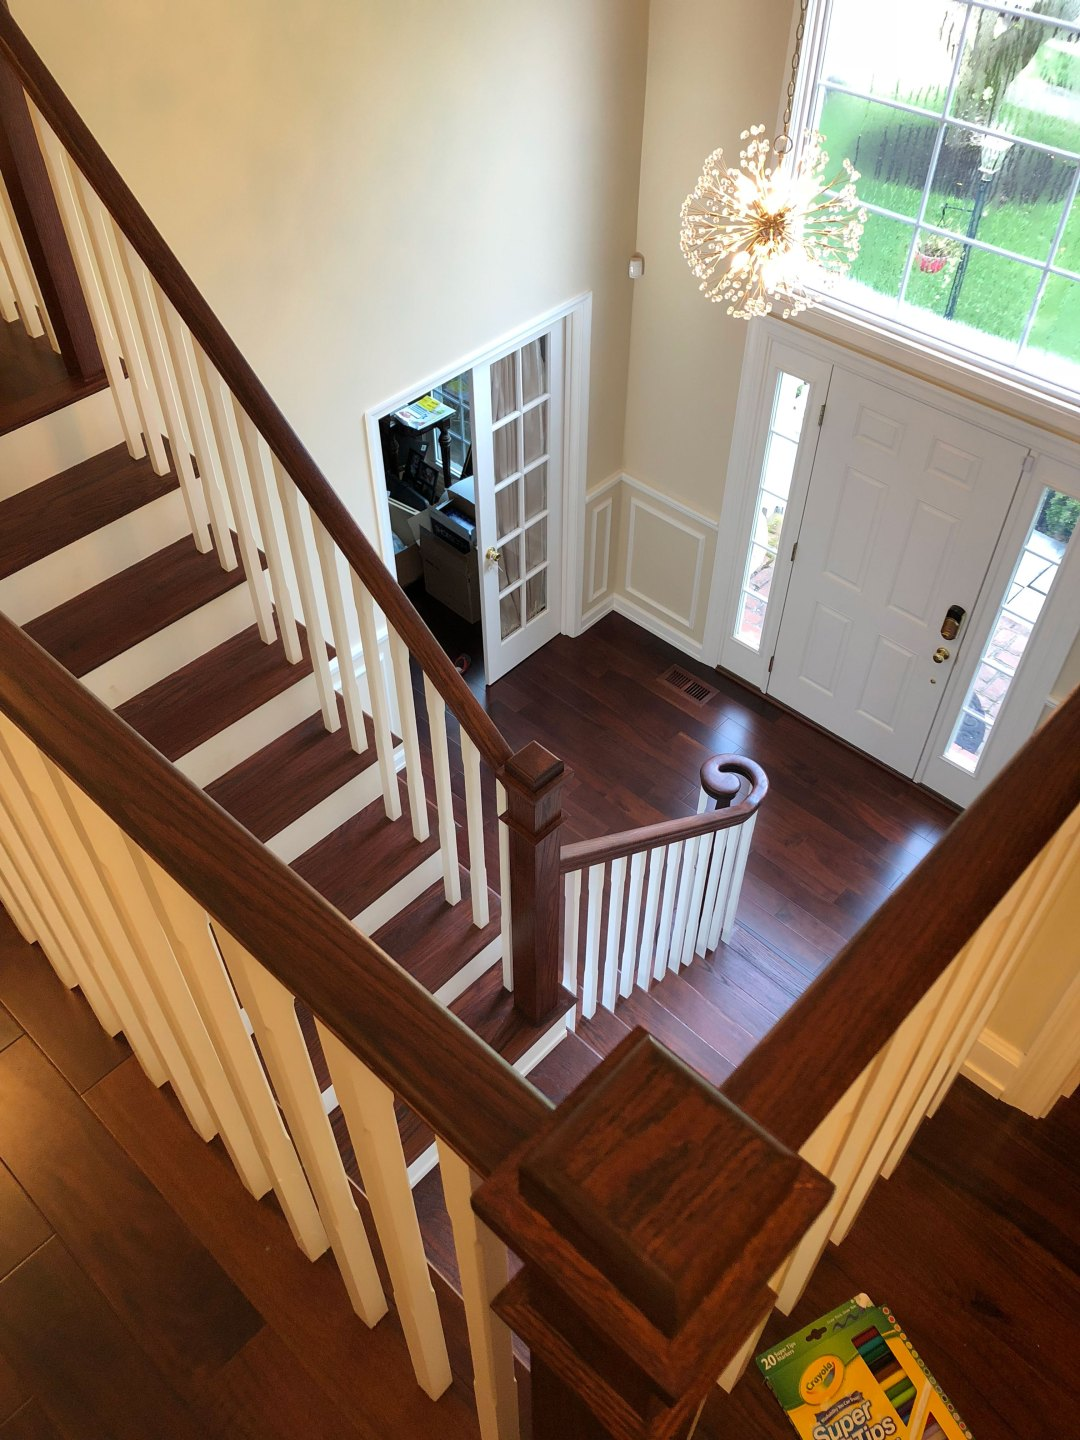 New Dark Hardwood Flooring and Stairs